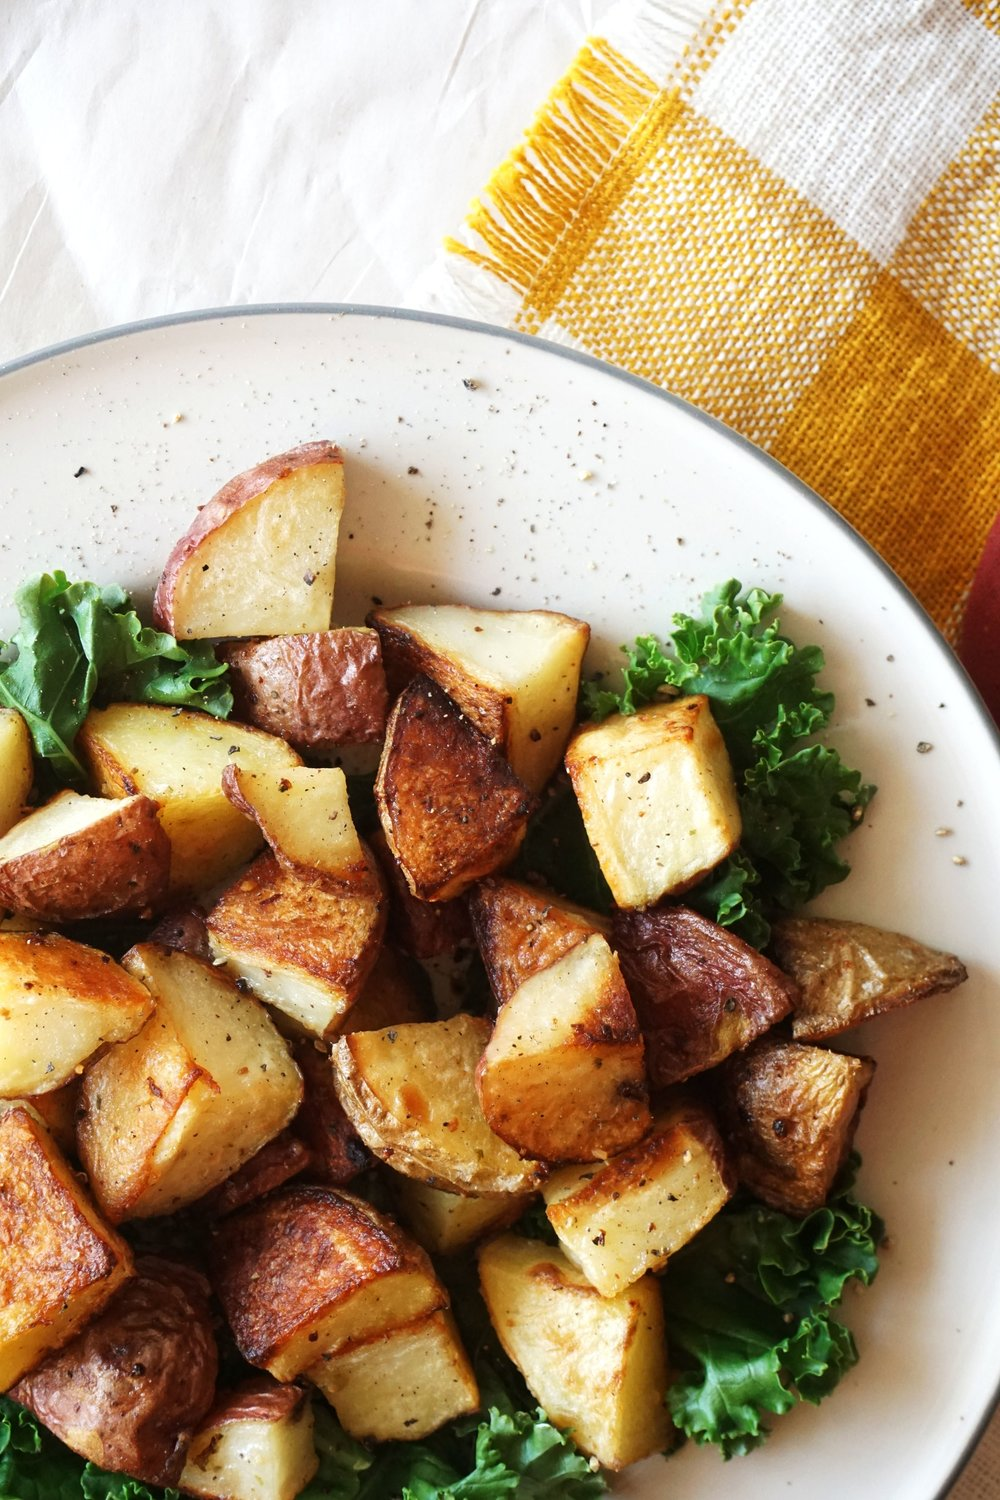 Crispy Skillet Roasted Garlic Potatoes (Vegan, GF, Paleo)